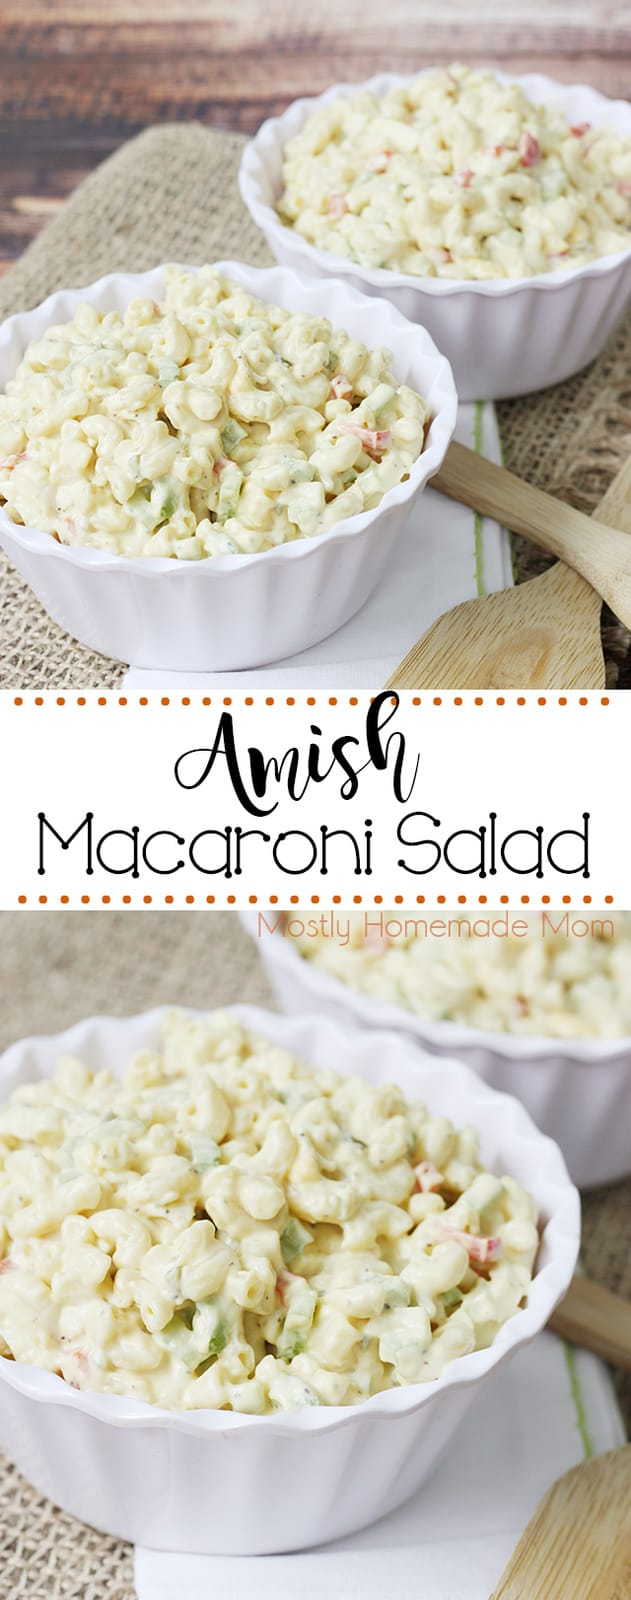 This Amish Macaroni Salad is great with sandwiches and cookouts! Macaroni noodles in a sweet dressing with peppers and onions - yum!